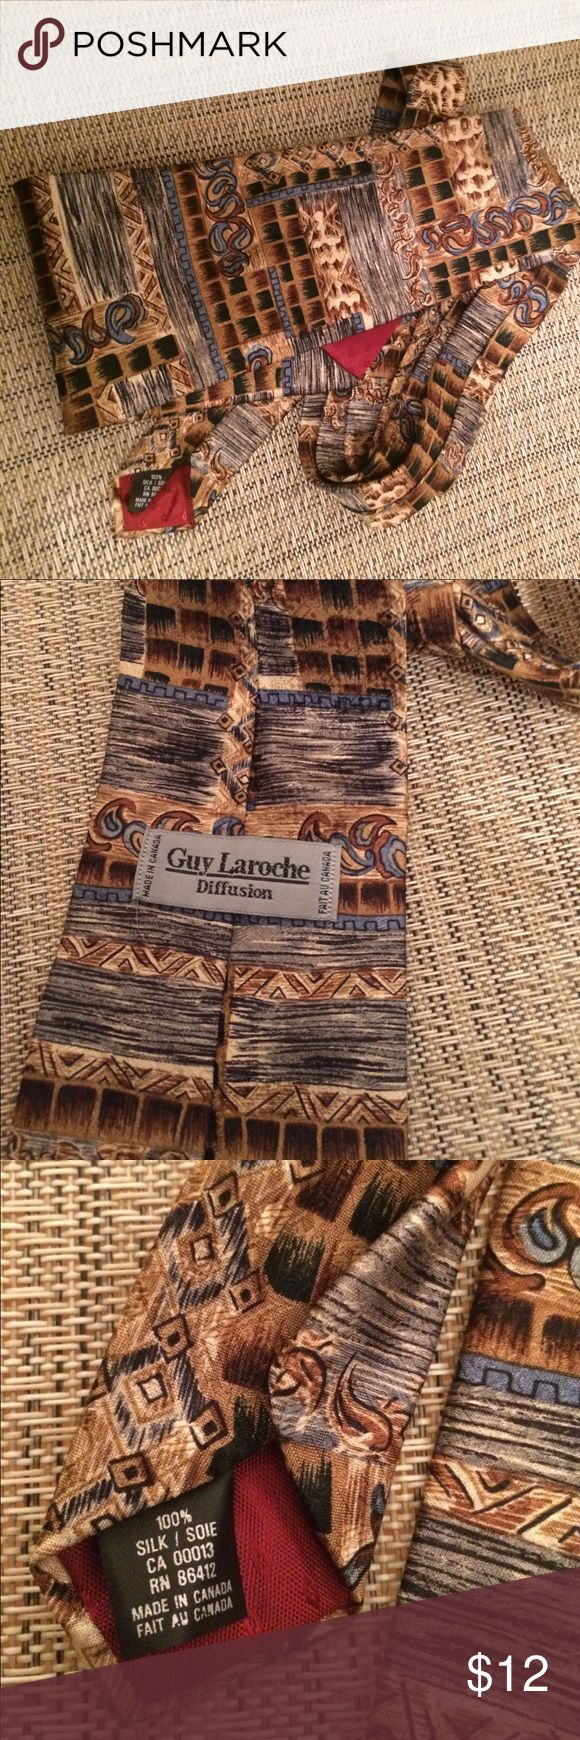 Guy Laroche necktie.  Silk. Geometric design Shades of brown blue gray and black. Made in Canada. Standard length. Excellent condition. guy laroche Accessories Ties